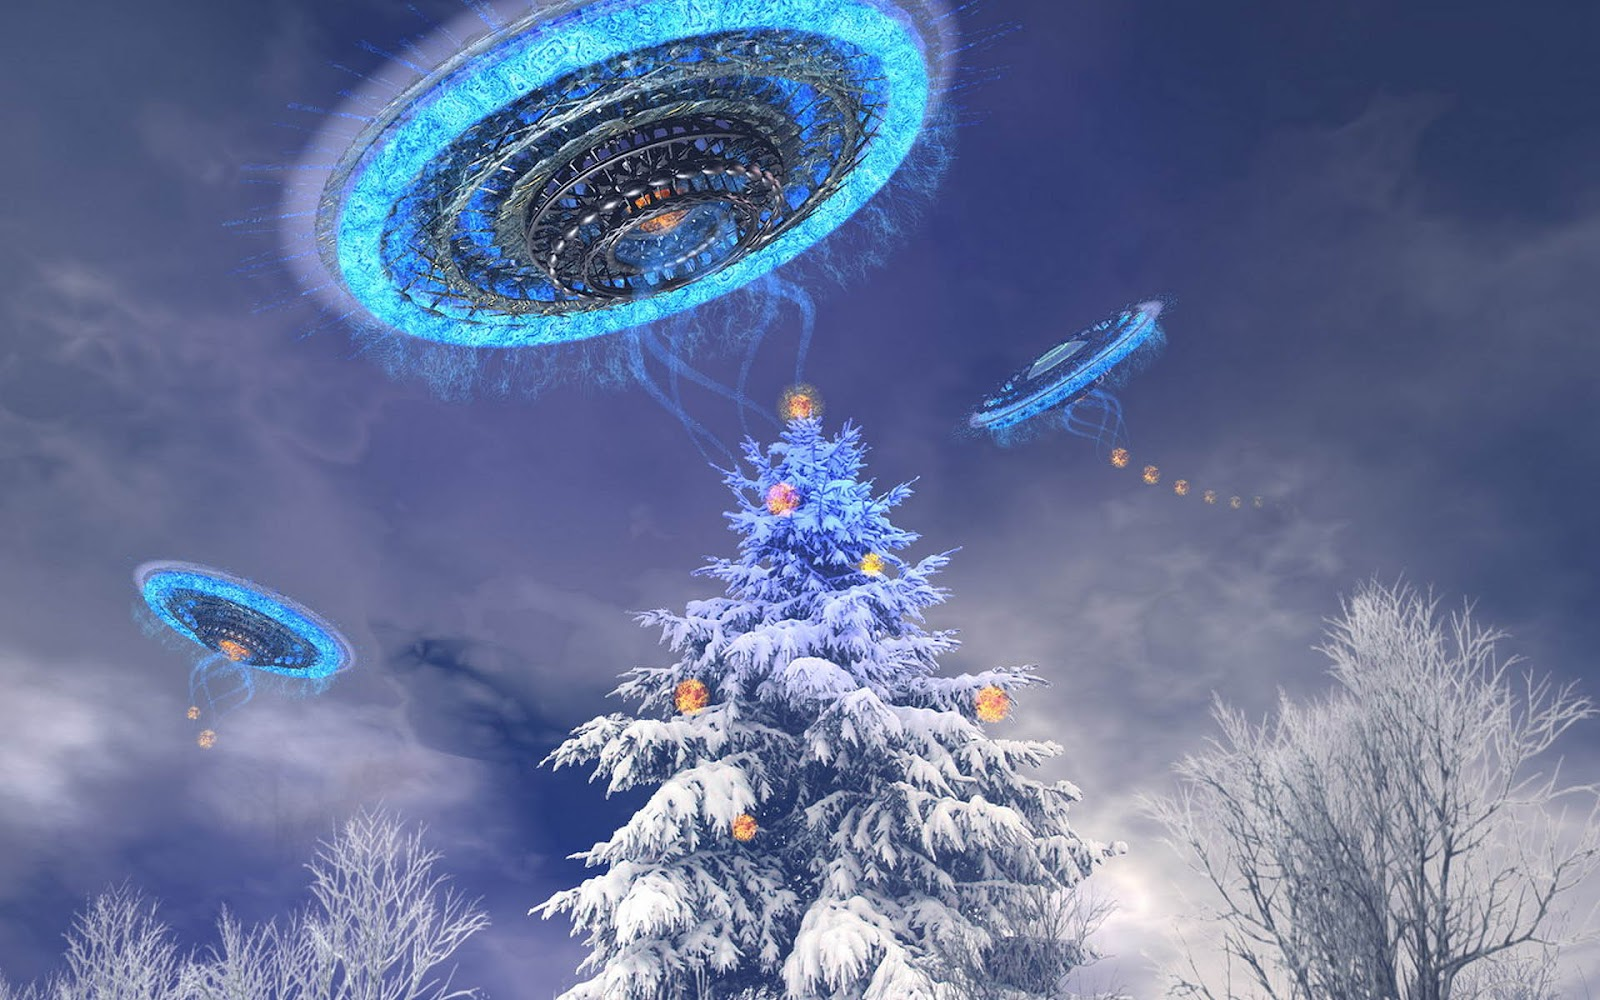 /s1600/hd 3d Ufo Achtergrond In De Winter Hd Wallpaperjpg